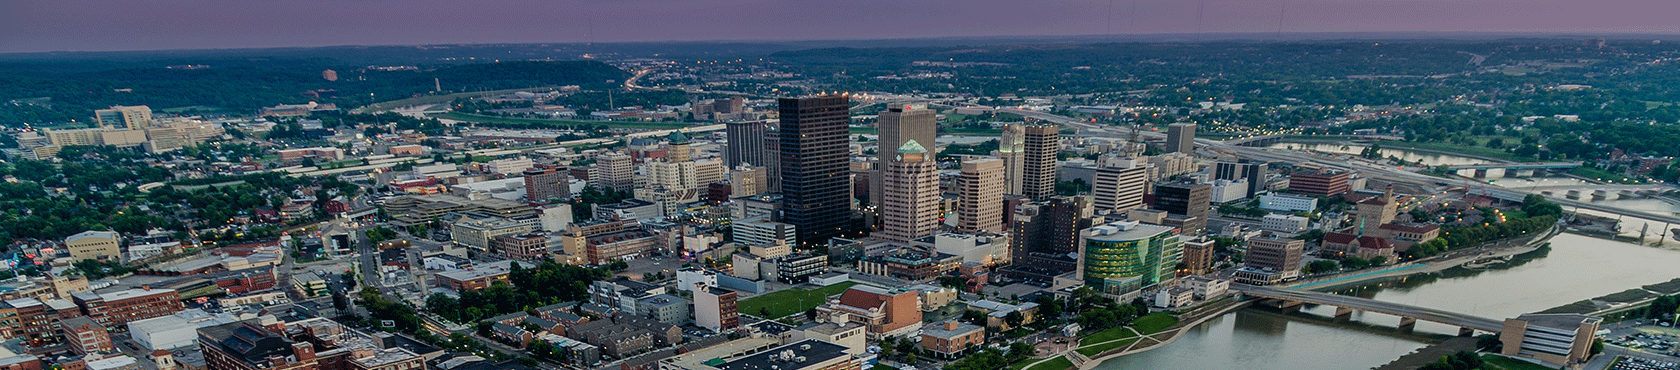 Dayton skyline and river